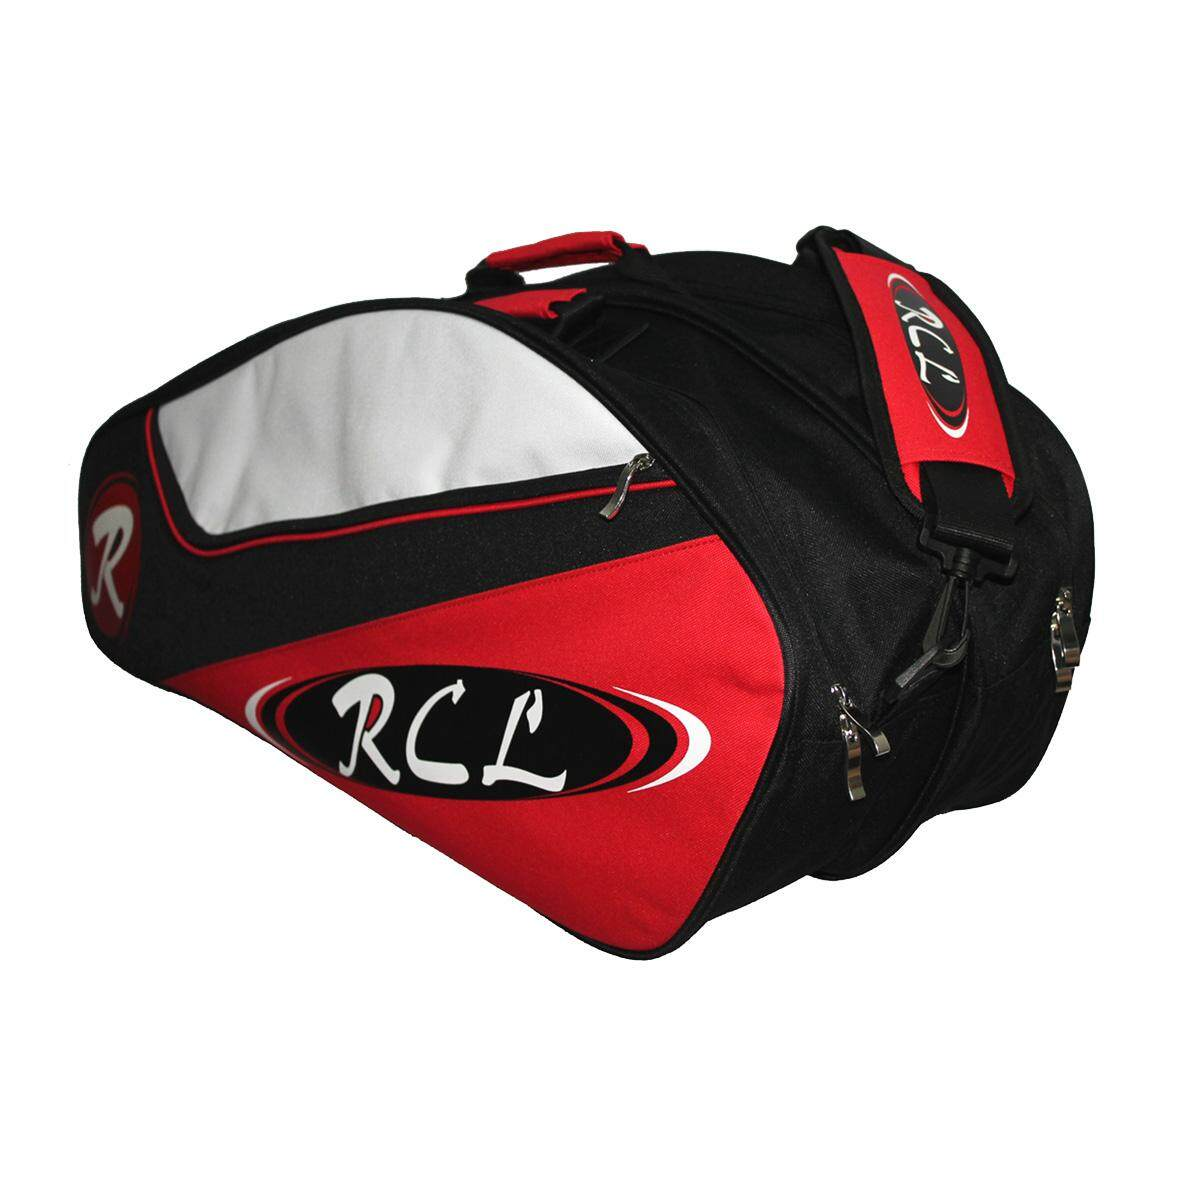 RCL BB97 Bag (Thick & Durable) for 20 Badminton Rackets (Red)